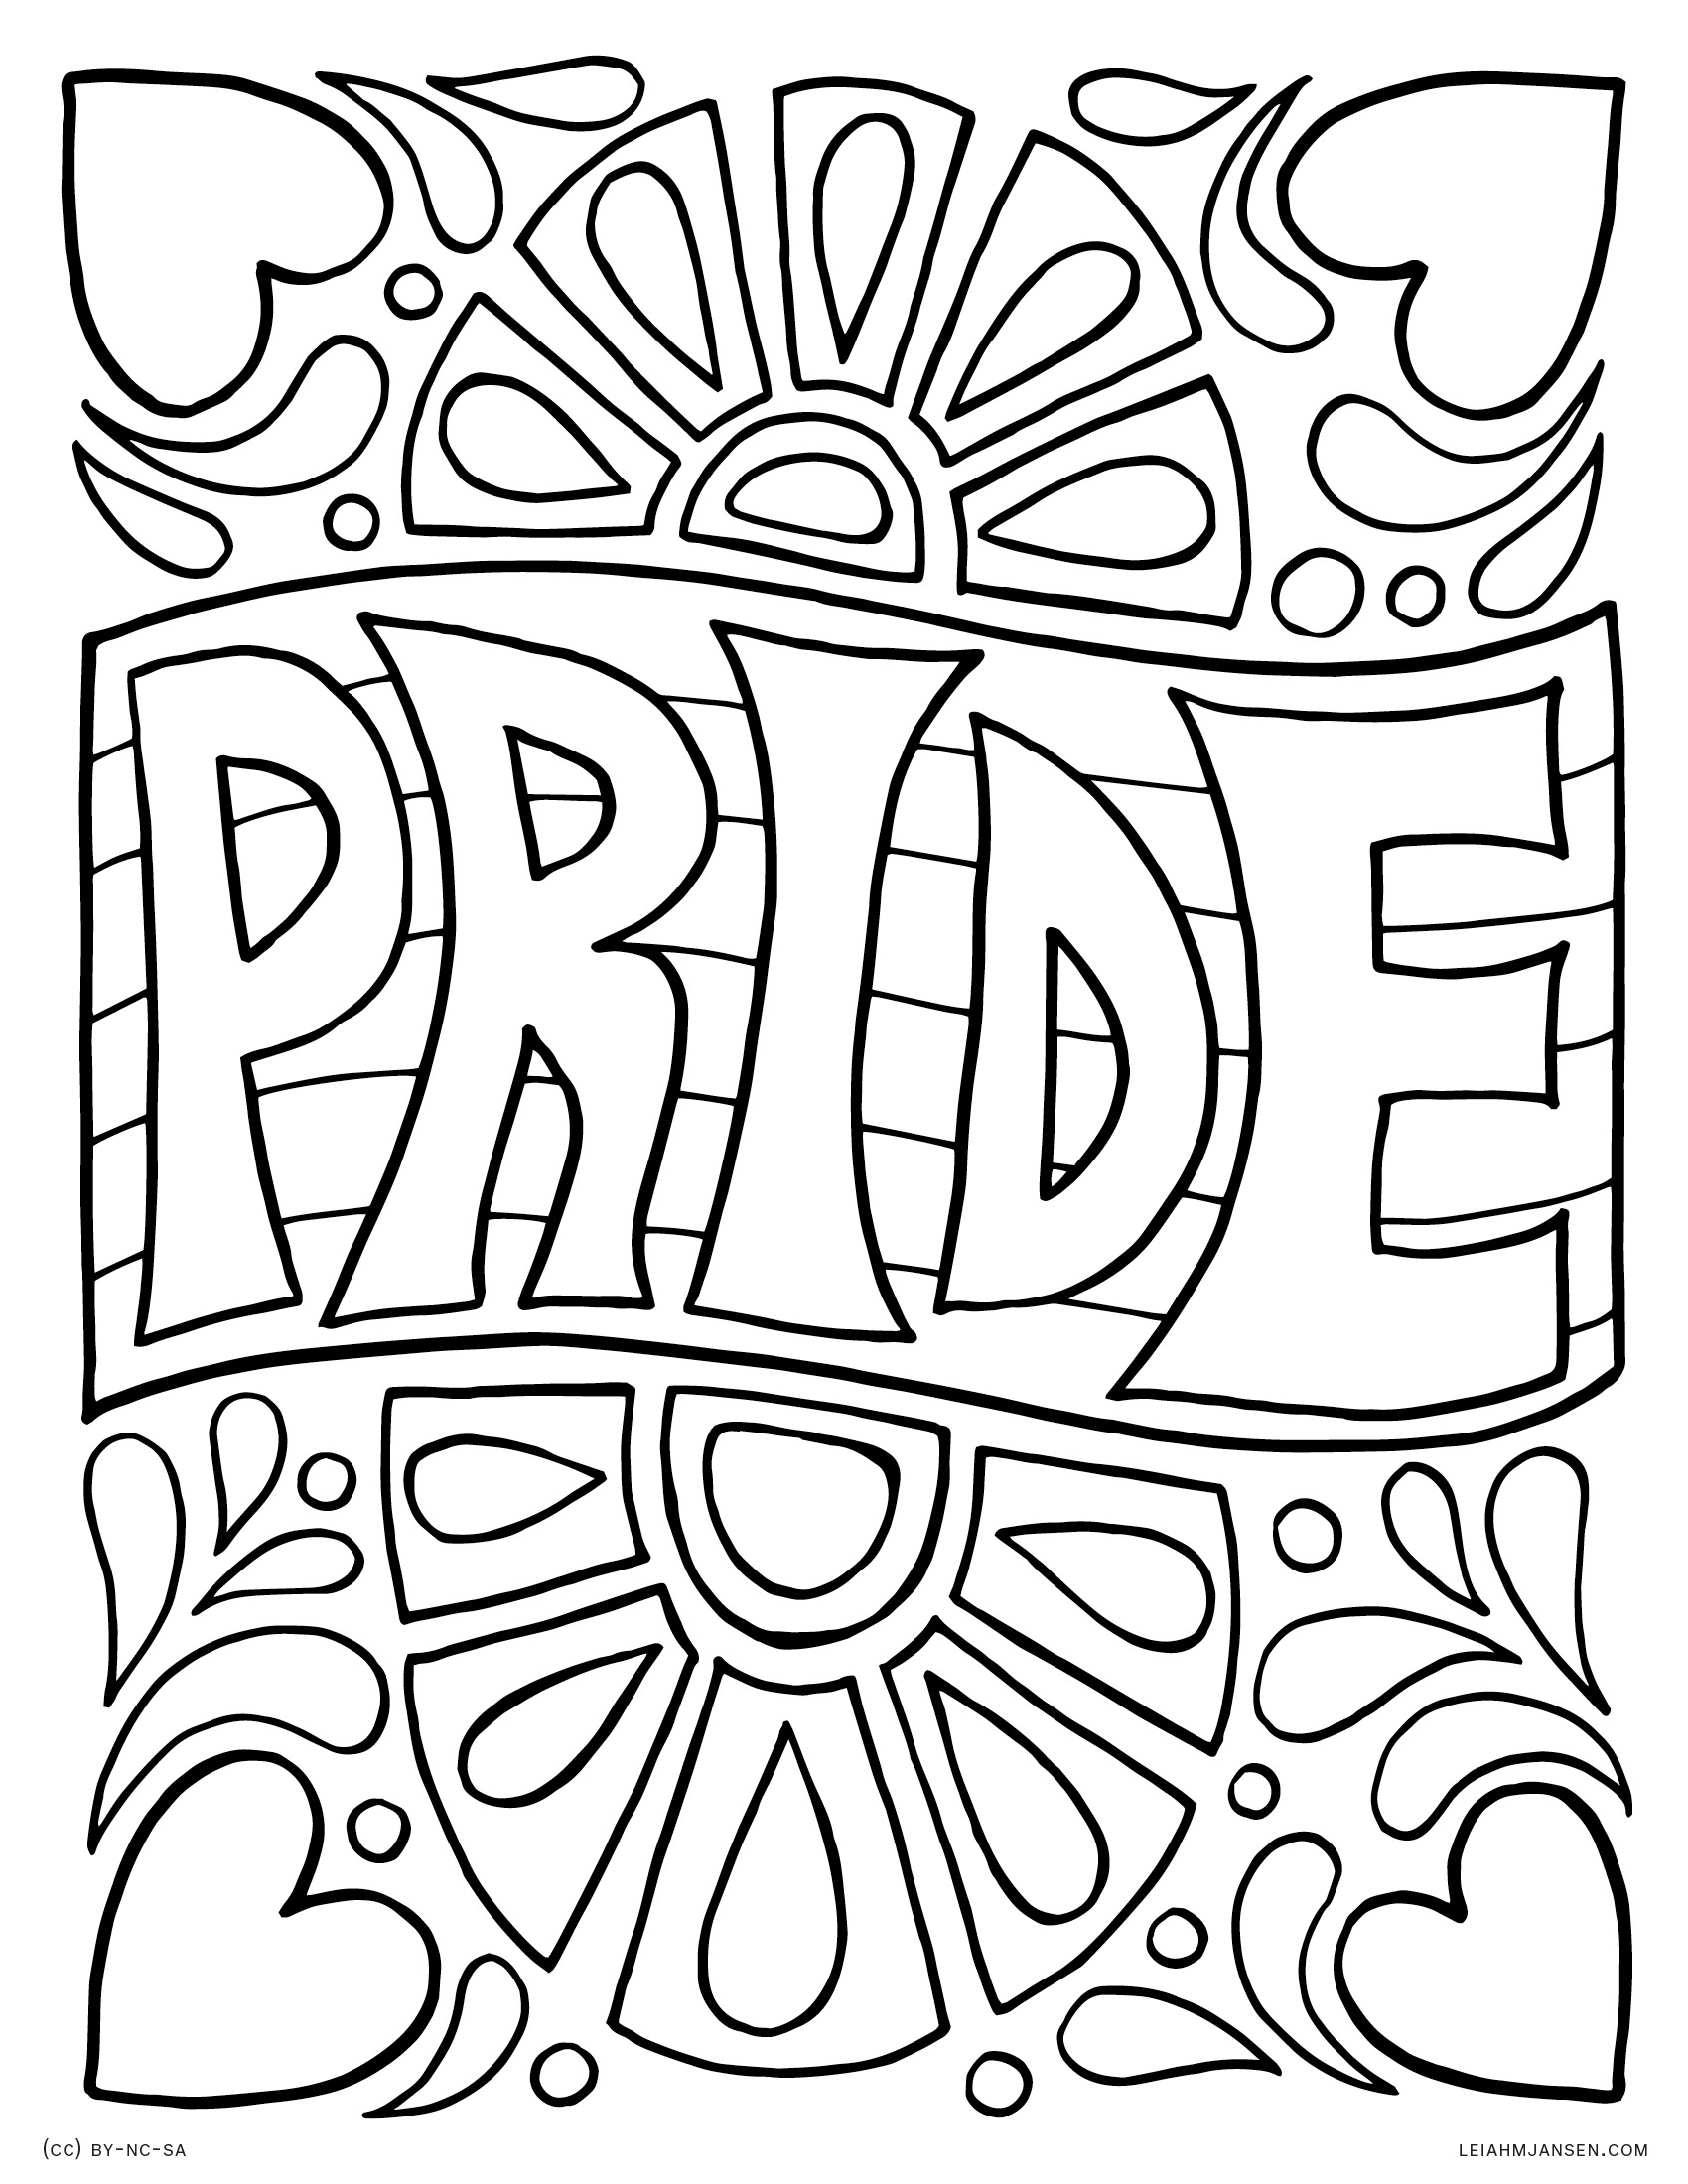 rainbow flag coloring page pride month in brant brant county coloring flag page rainbow